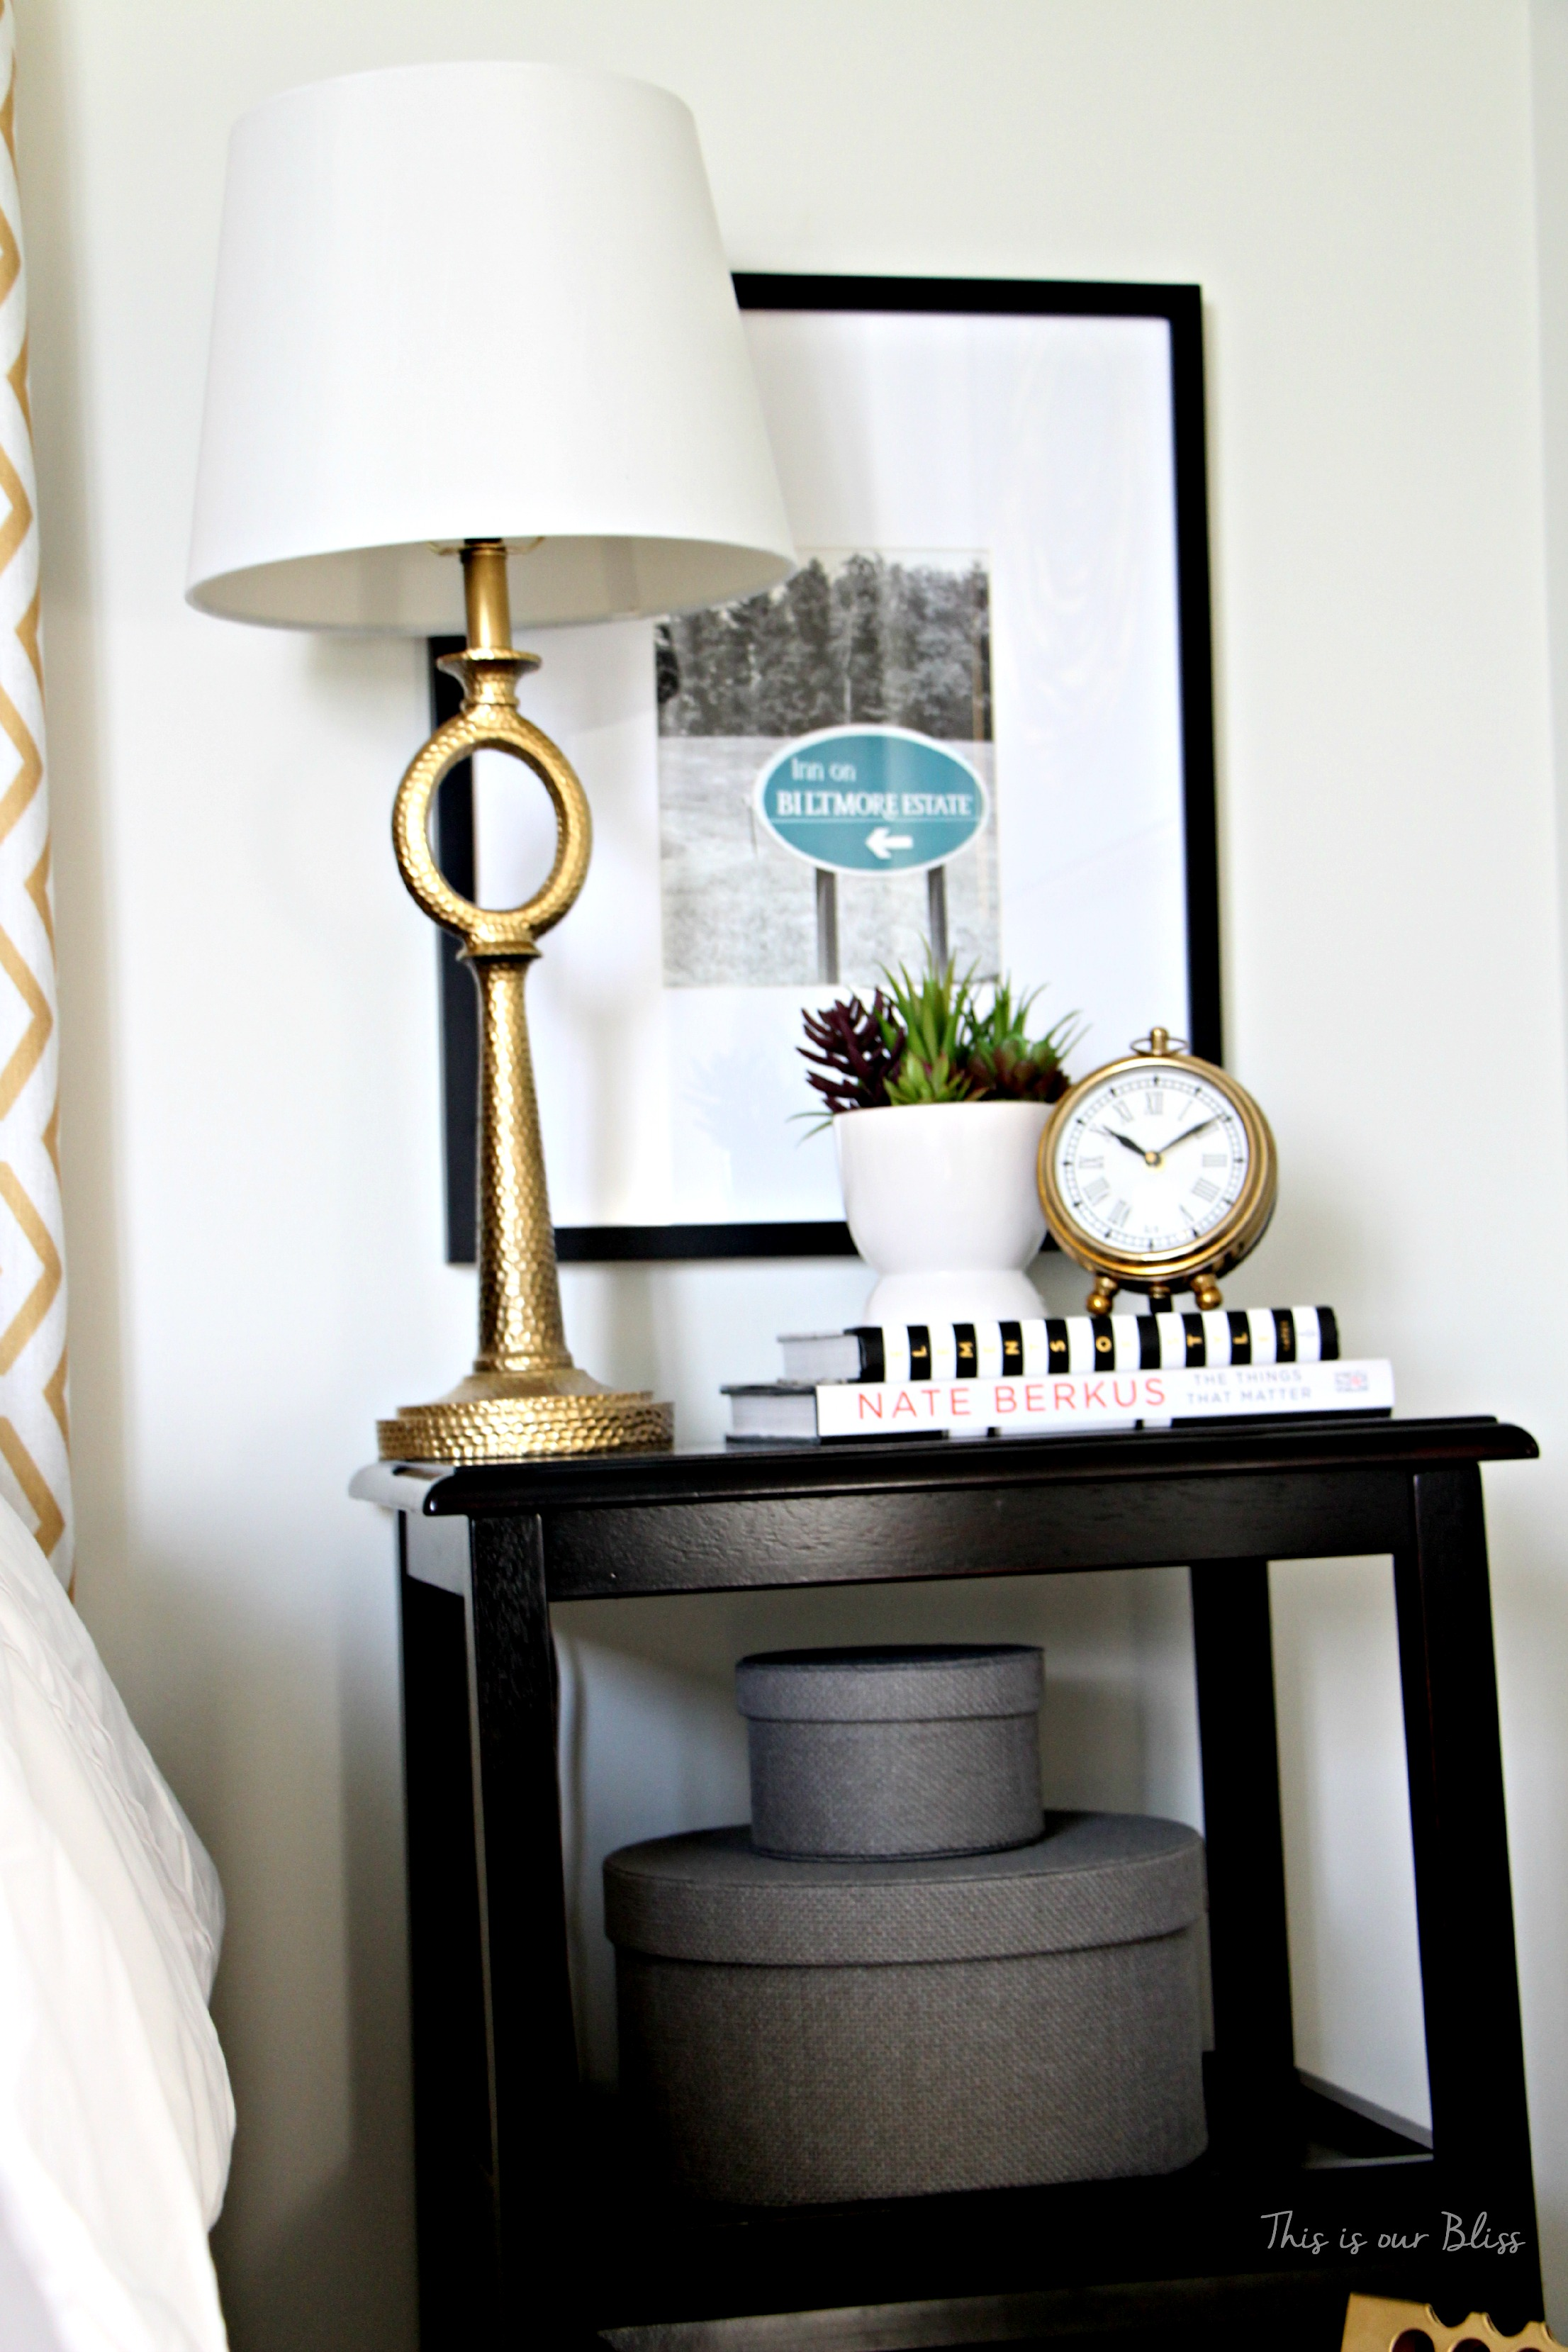 ... gold lamp & clock - succulent - Nate Berkus book -This is our Bliss